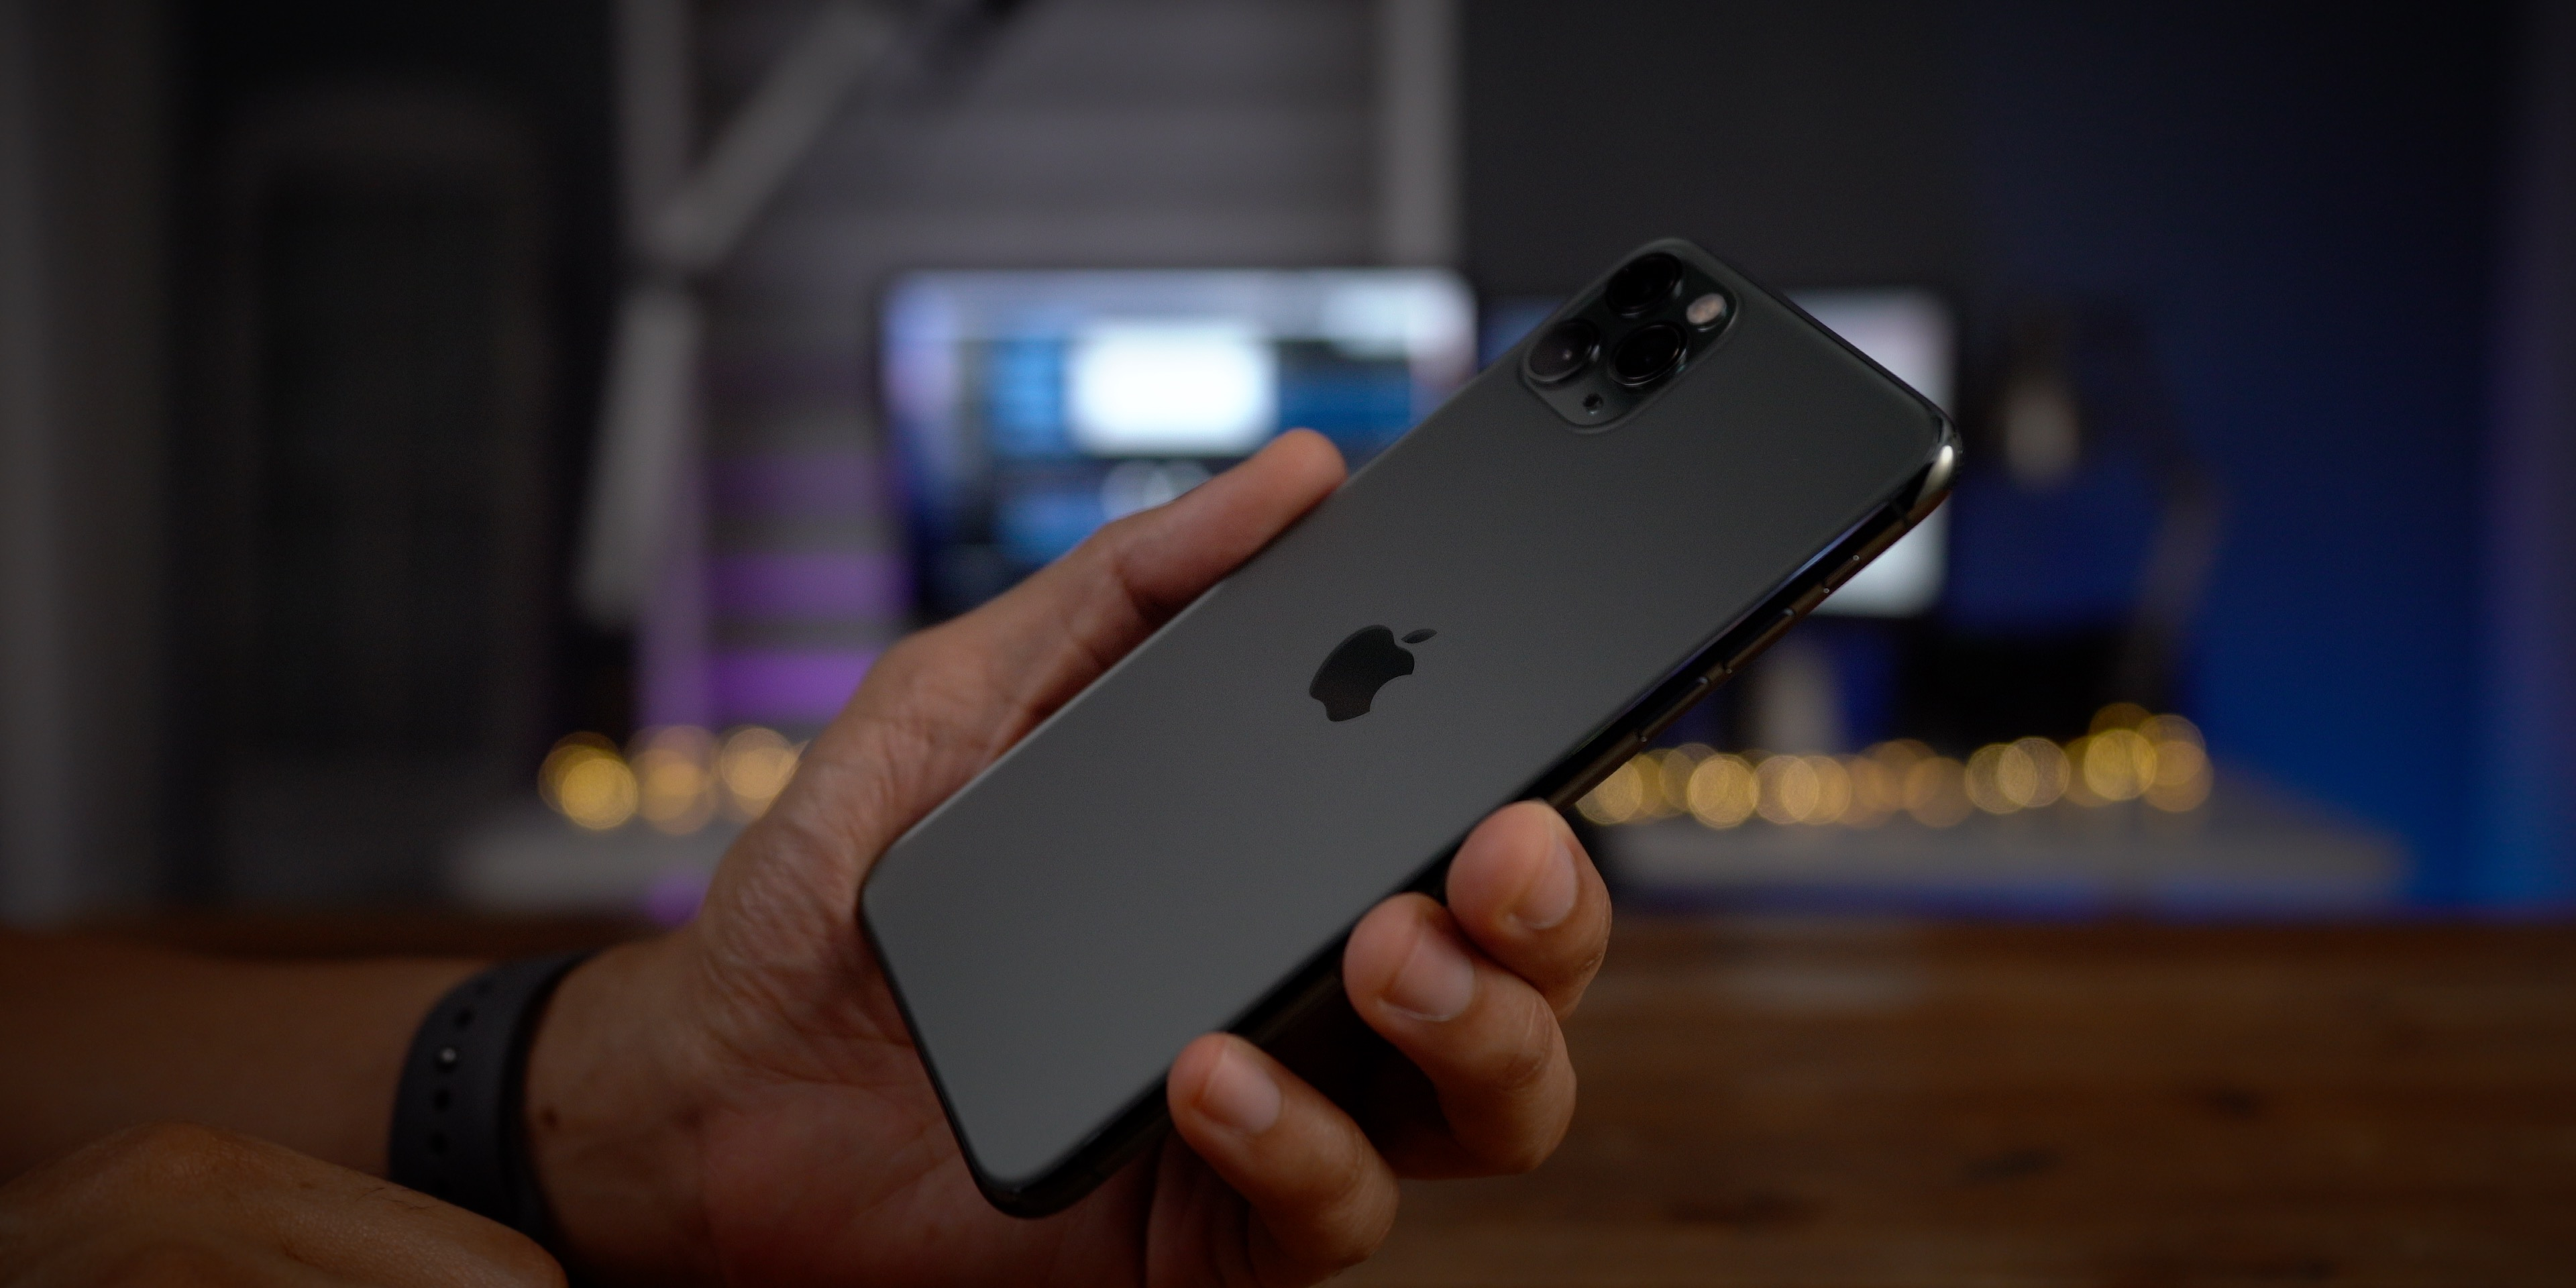 Iphone 11 Pro Max Sees Rare Unlocked Discount From 600 Today Only Refurb 9to5toys